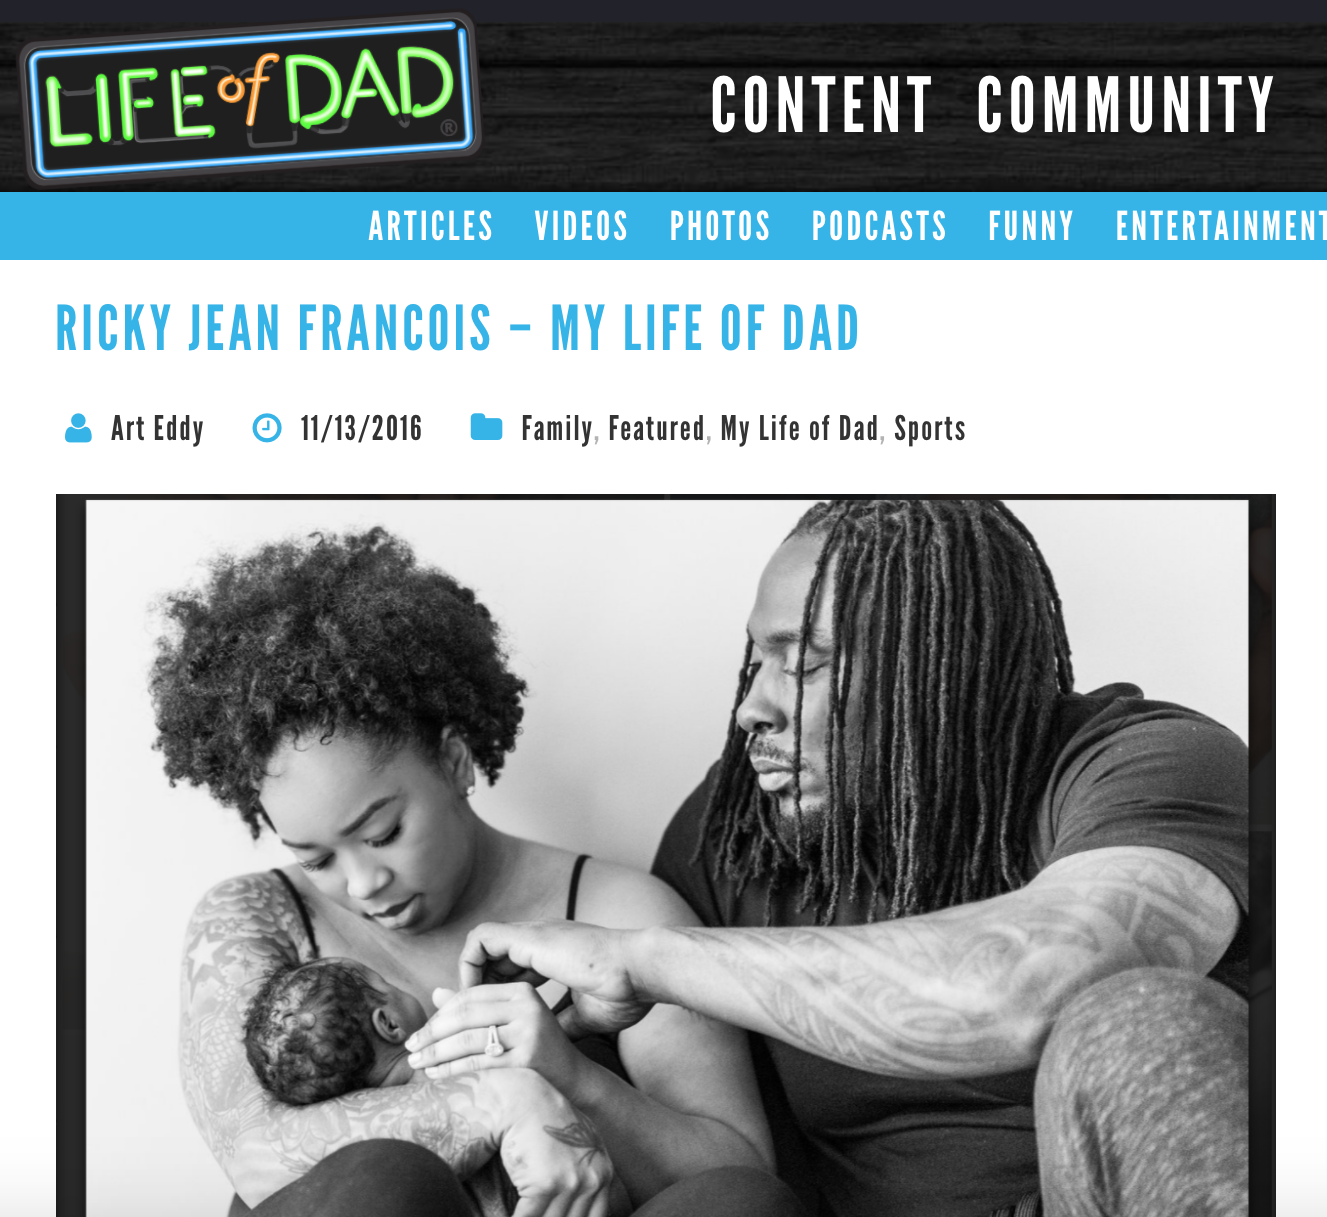 ricky jean francois is featured on life of dad where he discusses becoming a father.